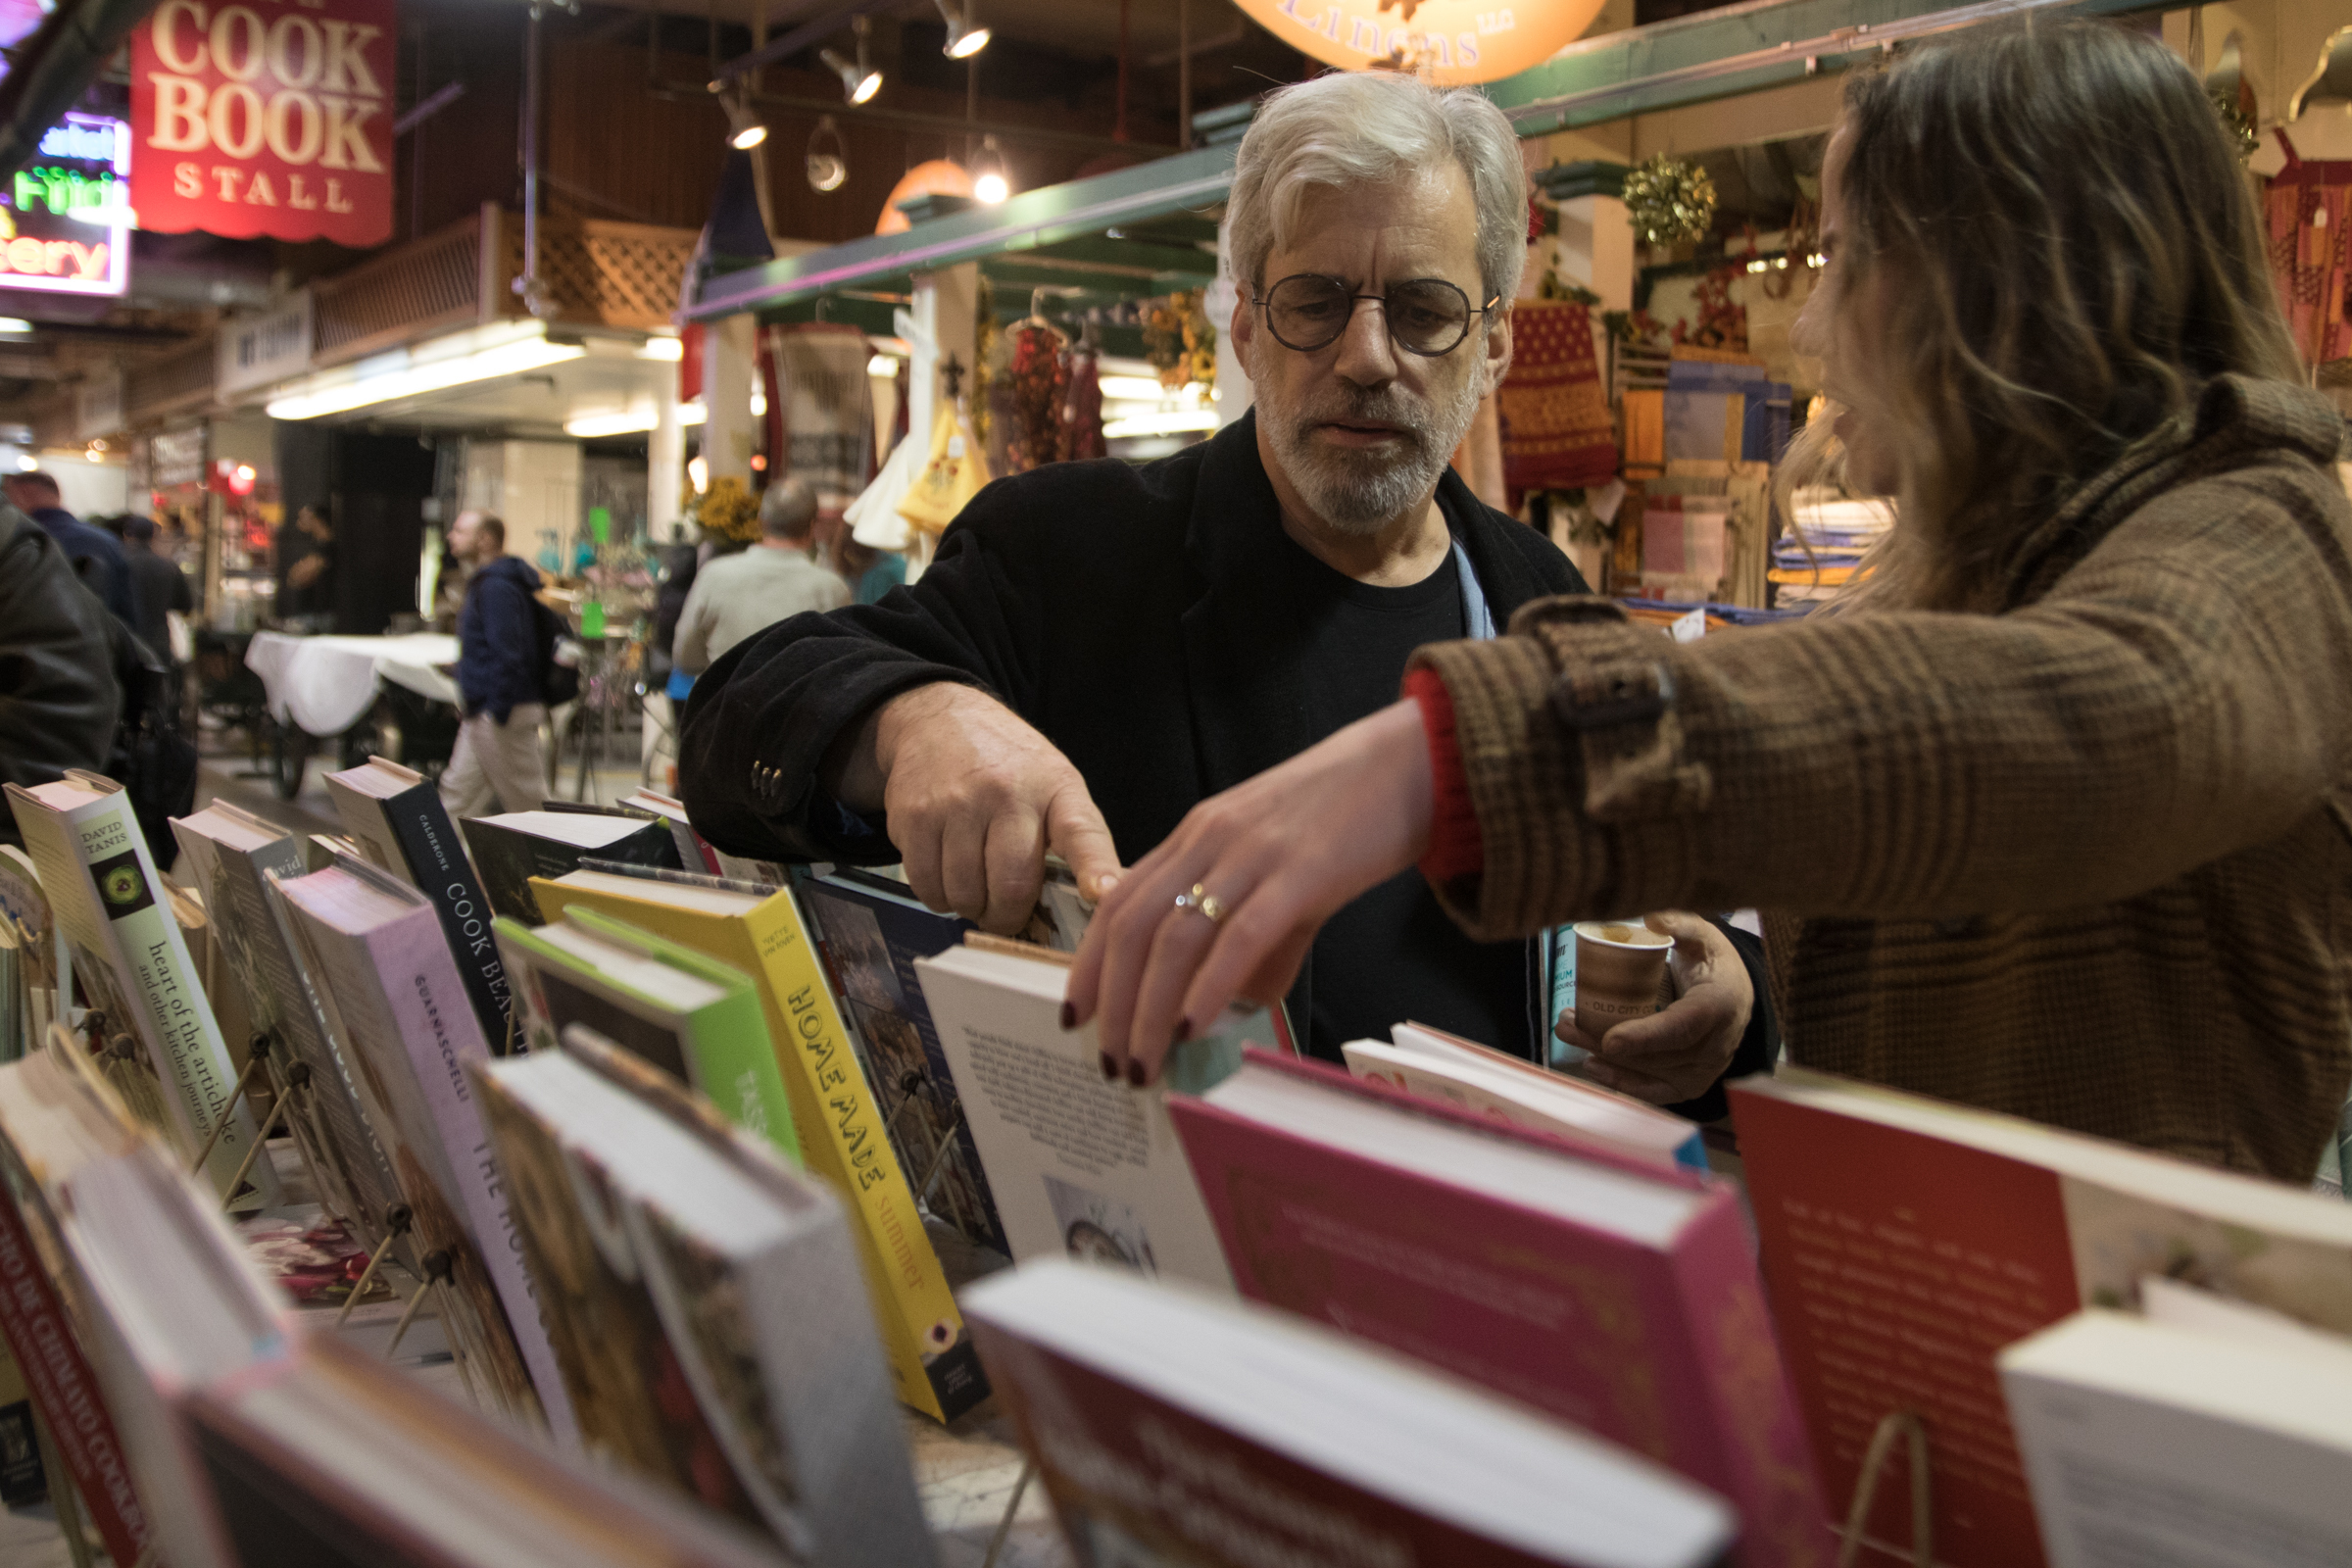 David Tanis looks at cookbooks at the Cook Book Stall at Reading Terminal Market with Danielle Mulholland, who works for CookNSolo Restaurants.